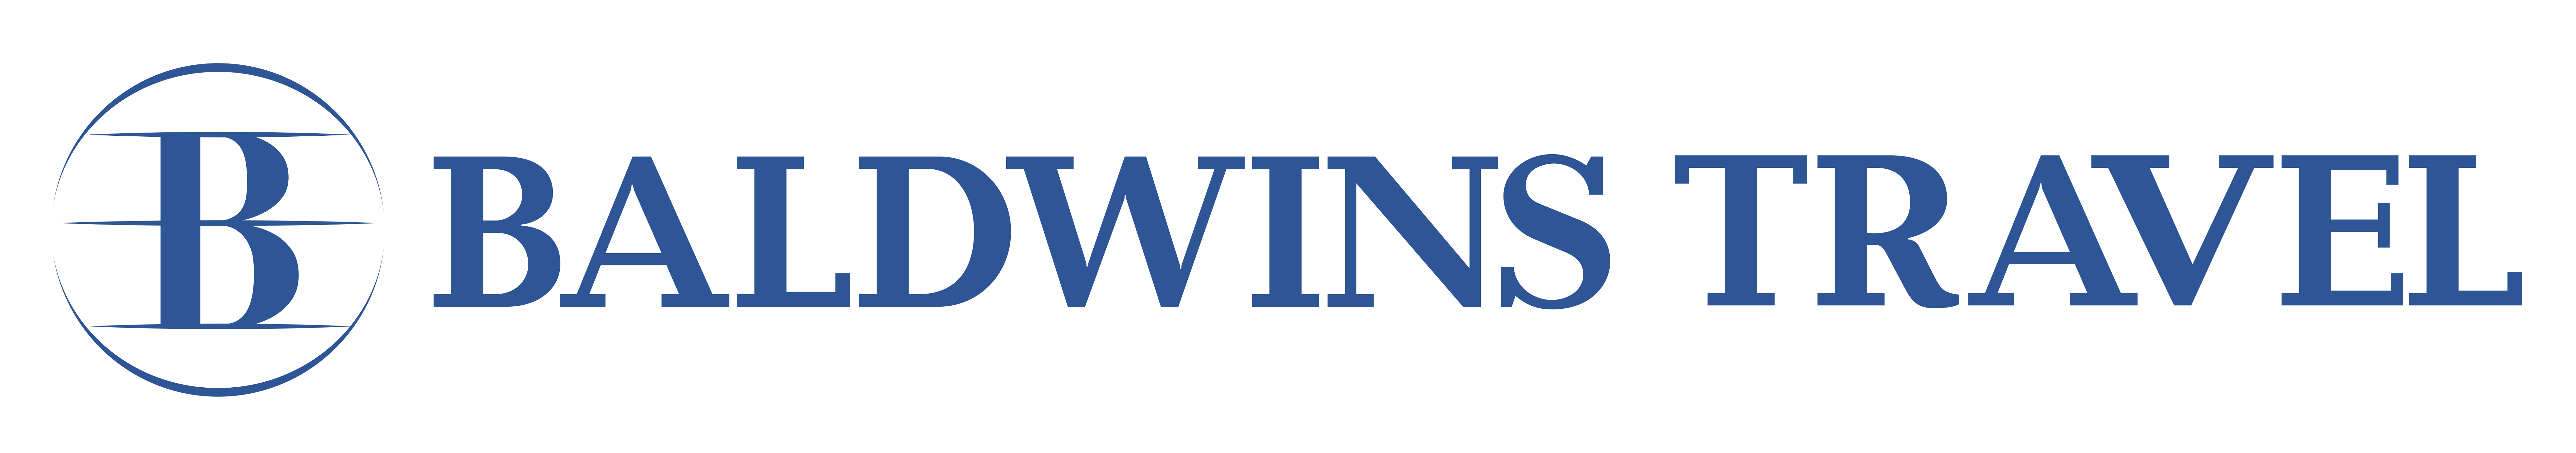 Baldwins Travel Logo